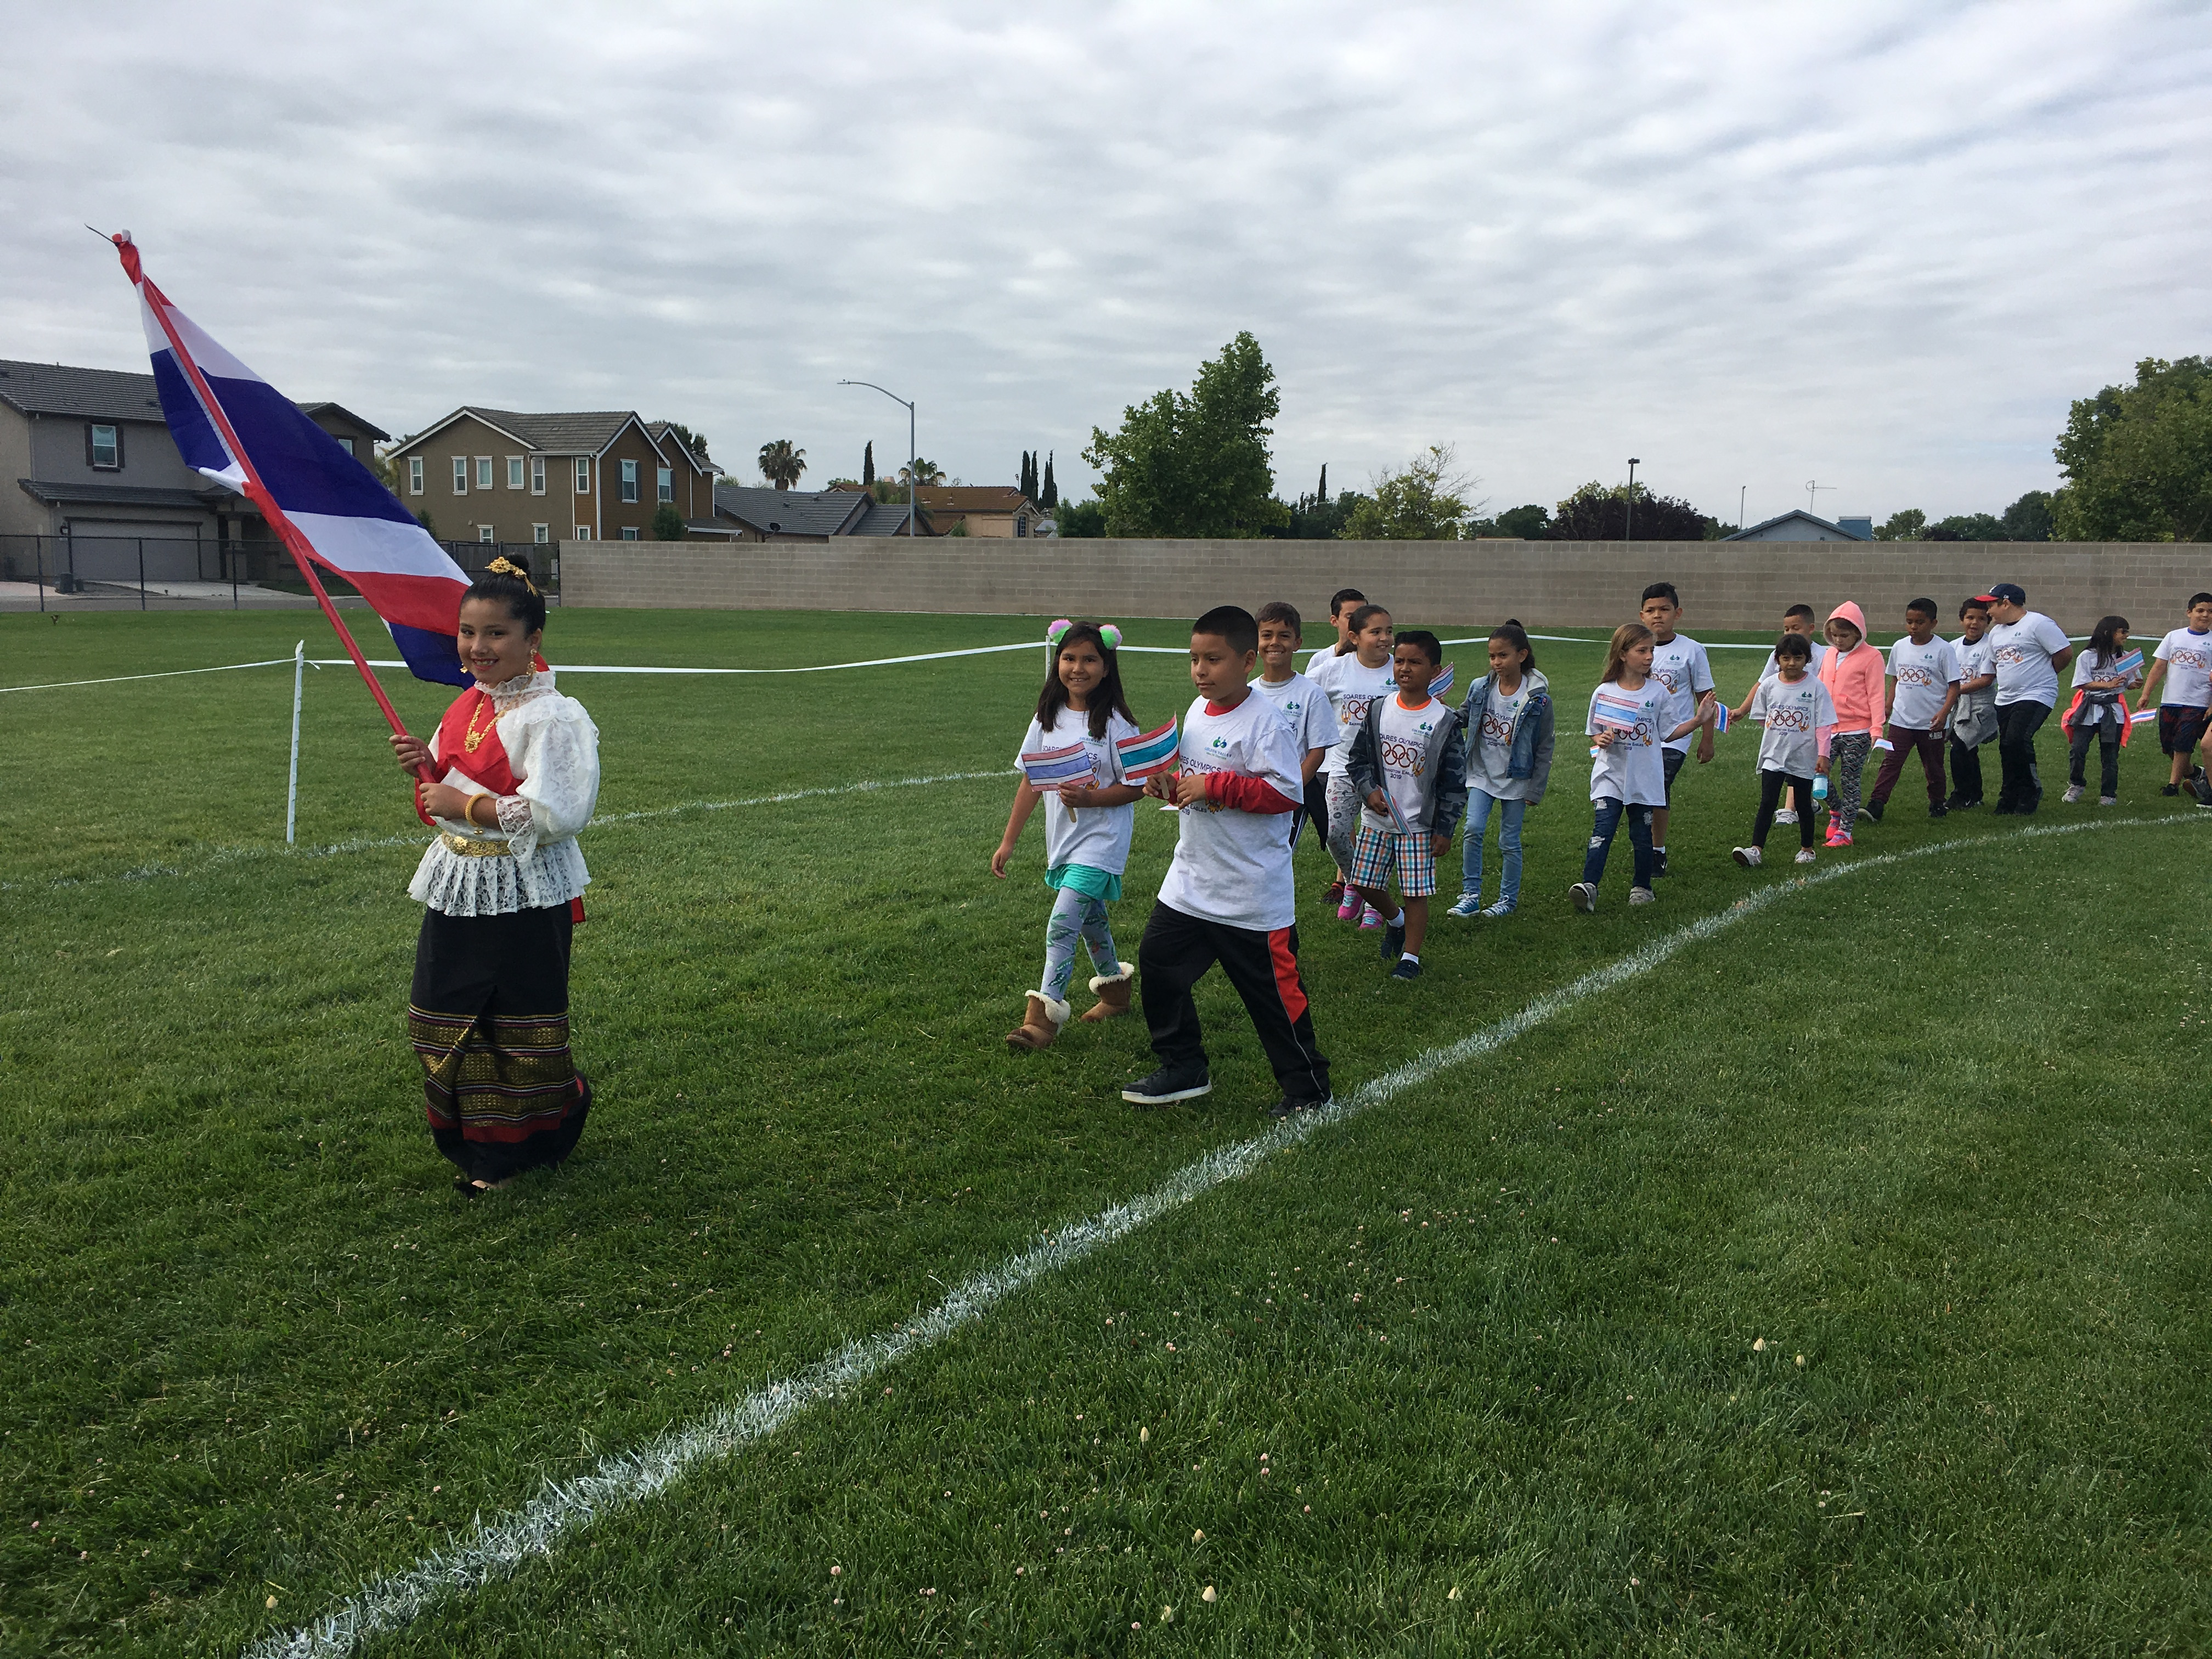 The students all enjoying different activities during their Mini-Olympics